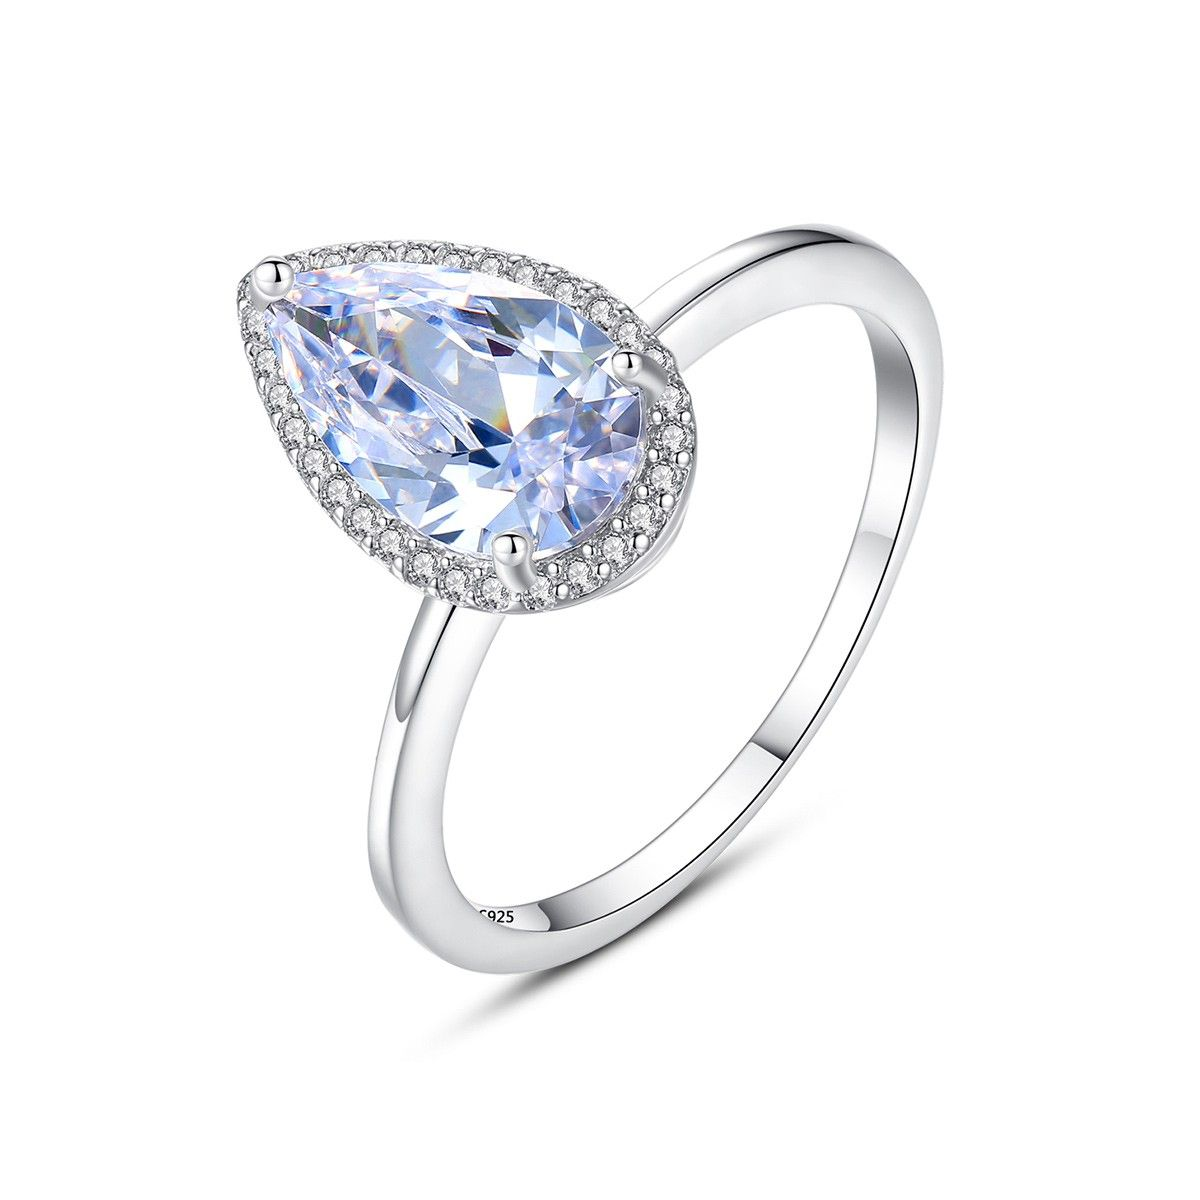 Cubic Zirconia Open End Teardrop Ring Rhodium Plated Sterling Silver